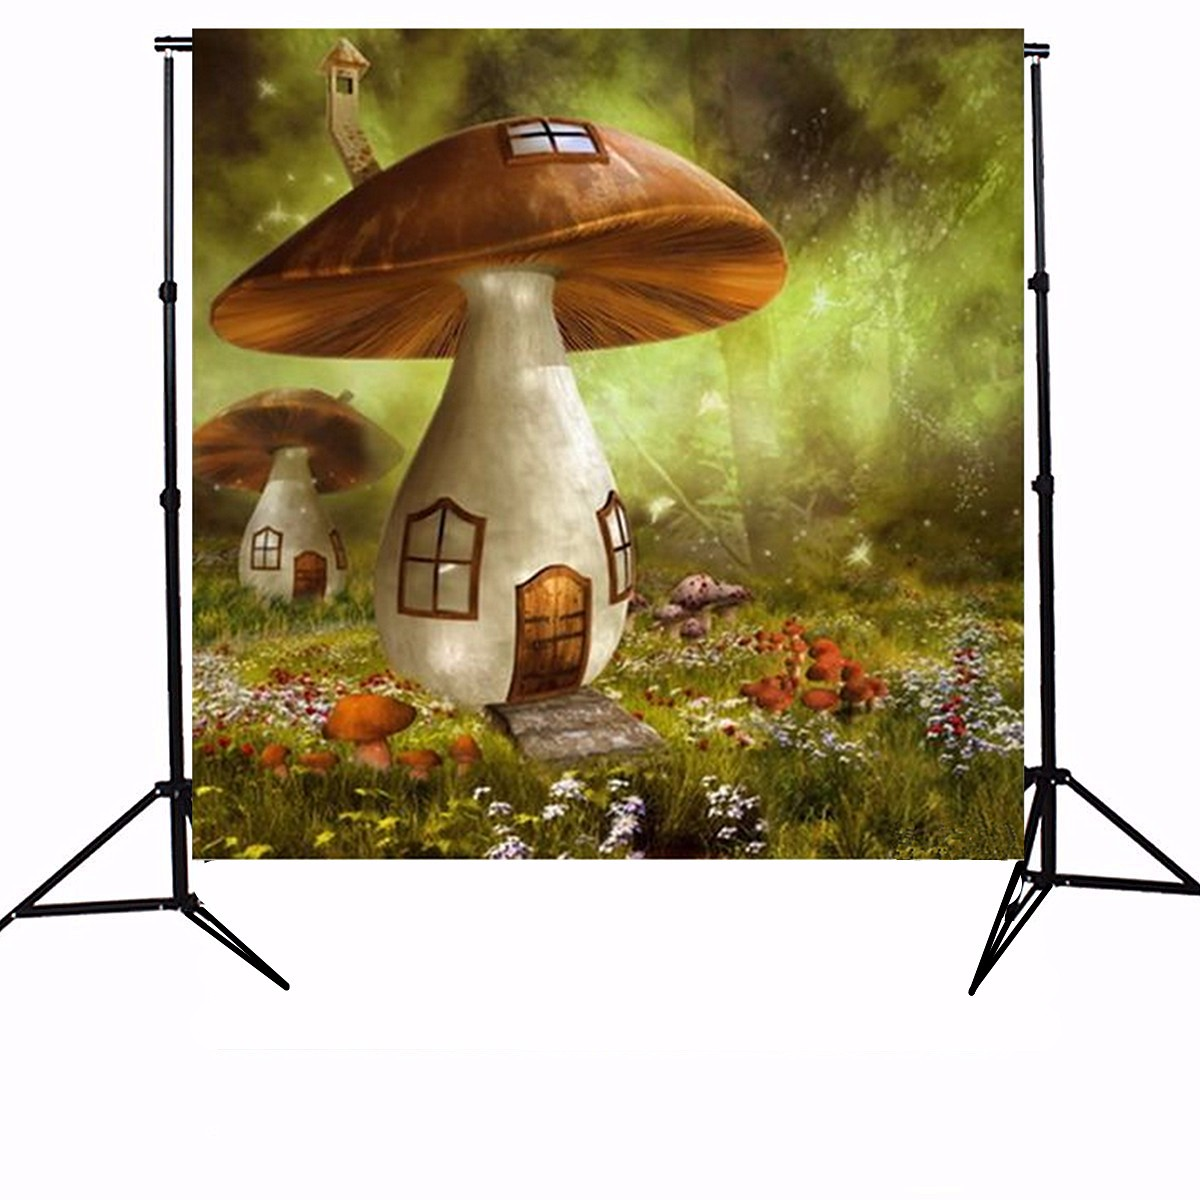 10x10ft Sunshine Forest Mushroom House Photography Backdrop Studio Prop Background